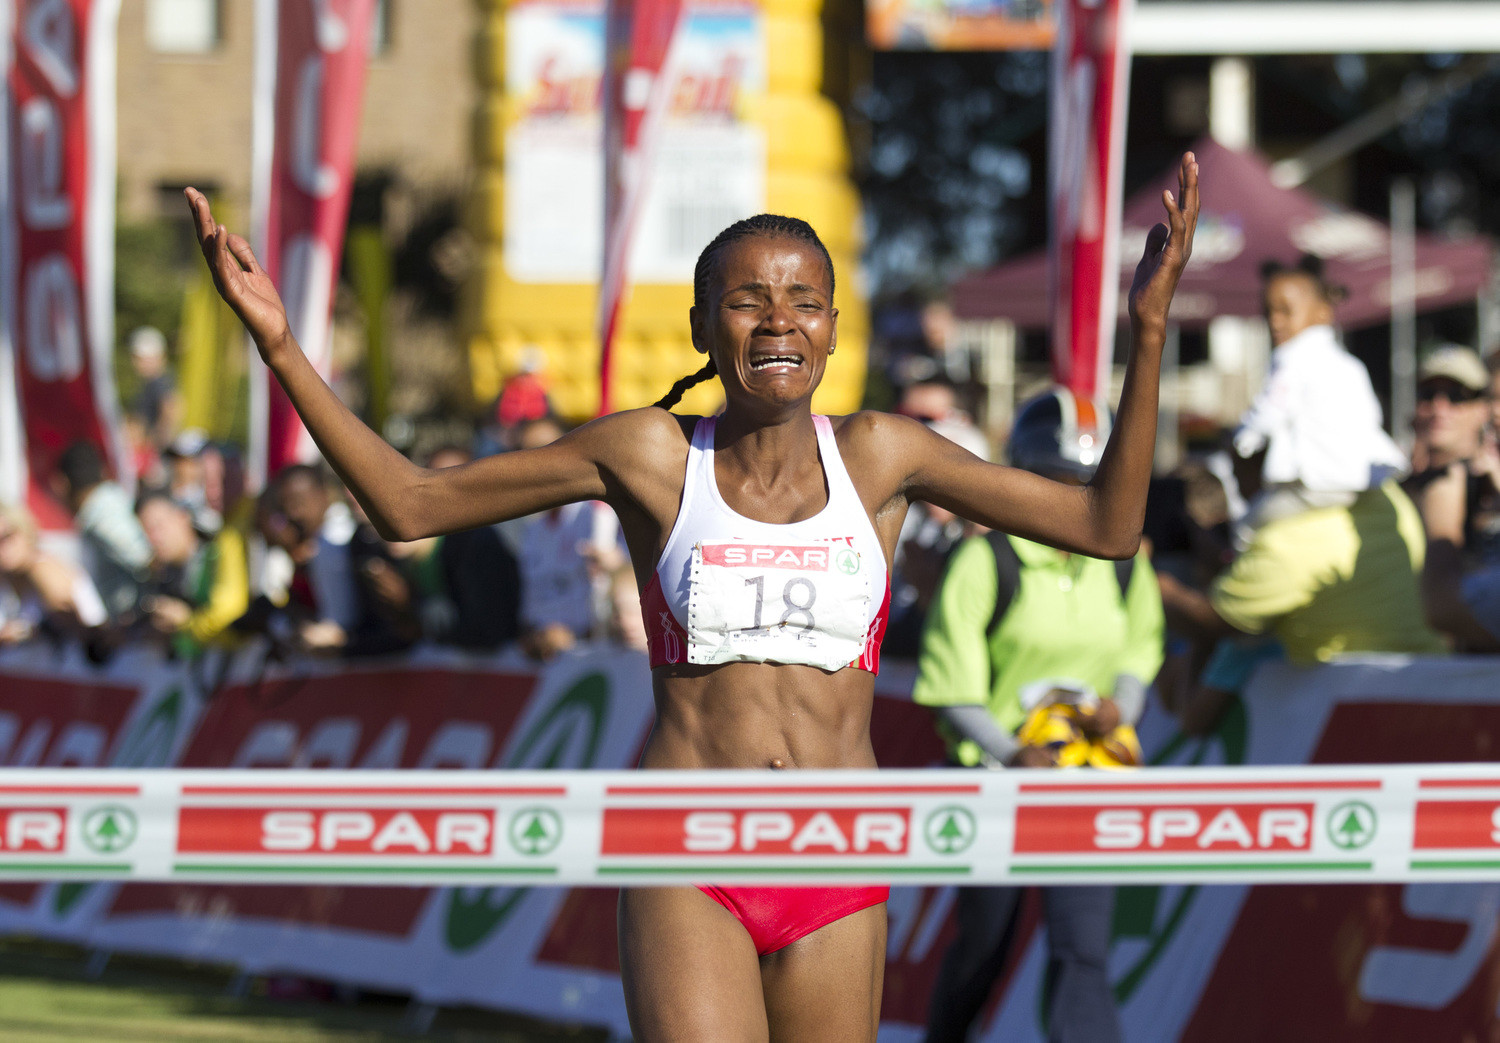 Cape Town Marathon is my ticket for Tokyo Marathon, the South Africa twin Lebogang Phalula says